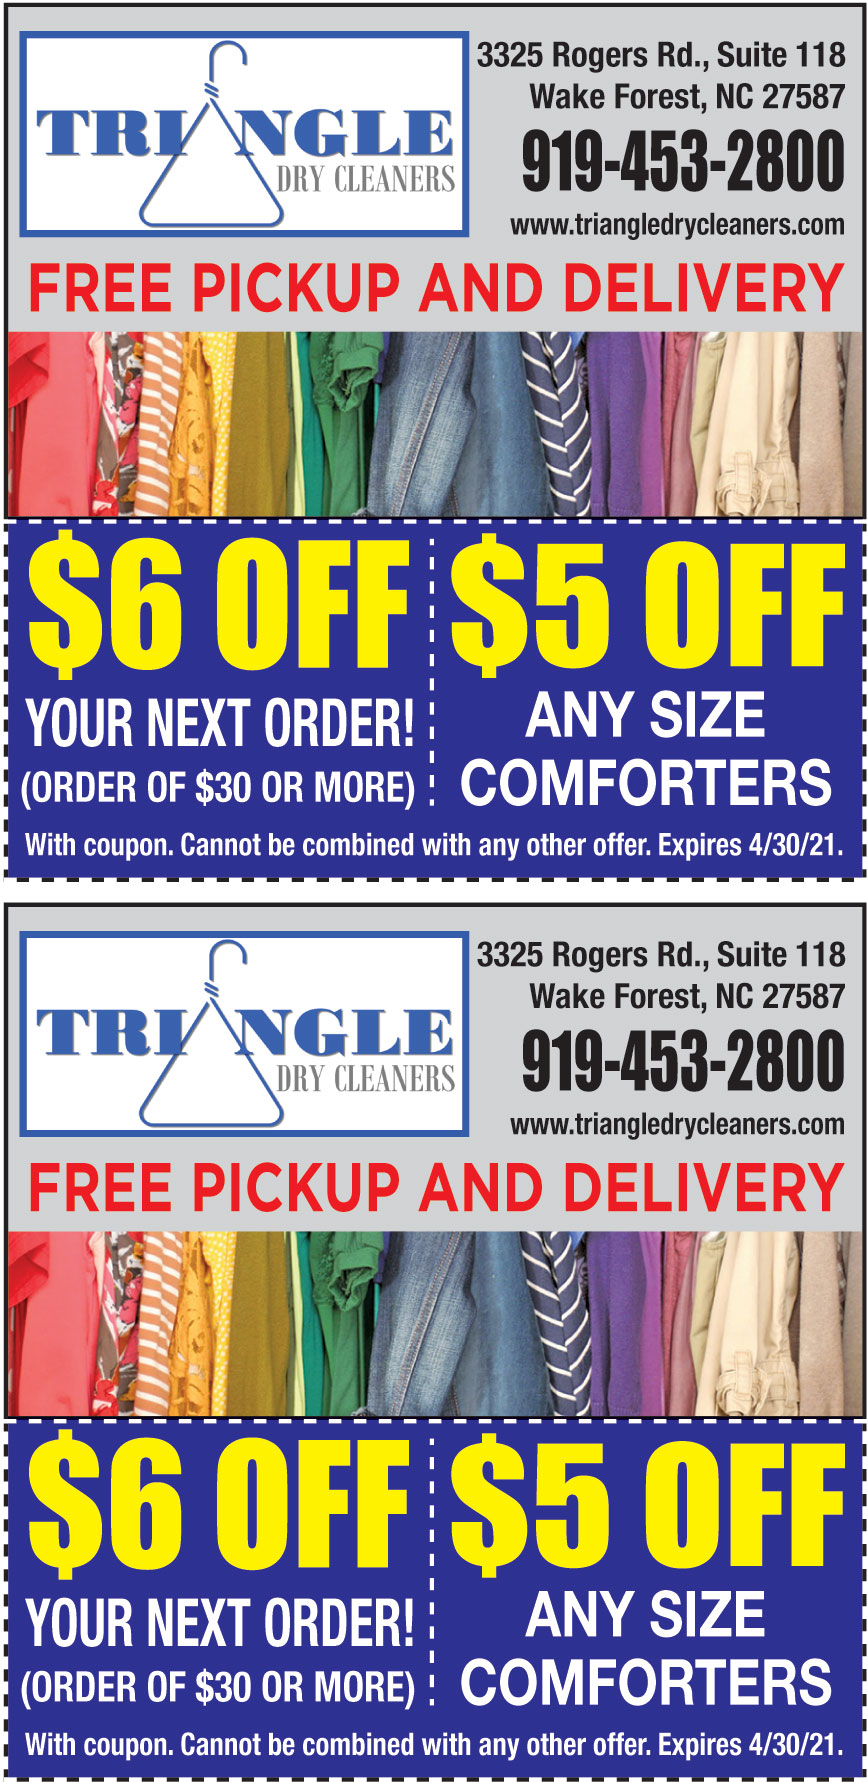 TRIANGLE DRY CLEANERS